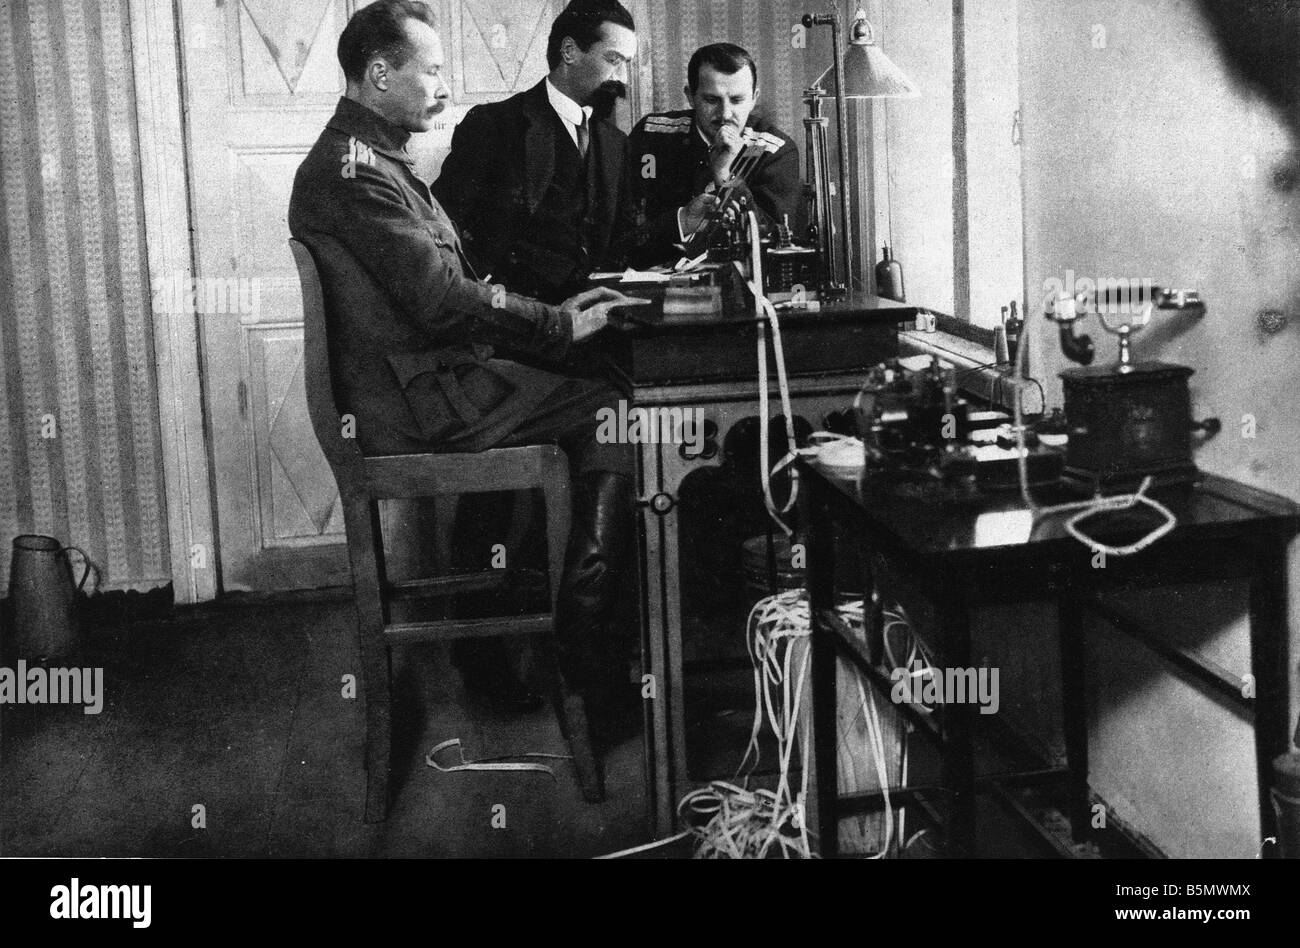 9RD 1917 12 15 A1 2 Brest Litovsk Russian telex 1917 Great War 1914 18 Armistice of Brest Litovsk between Russia - Stock Image